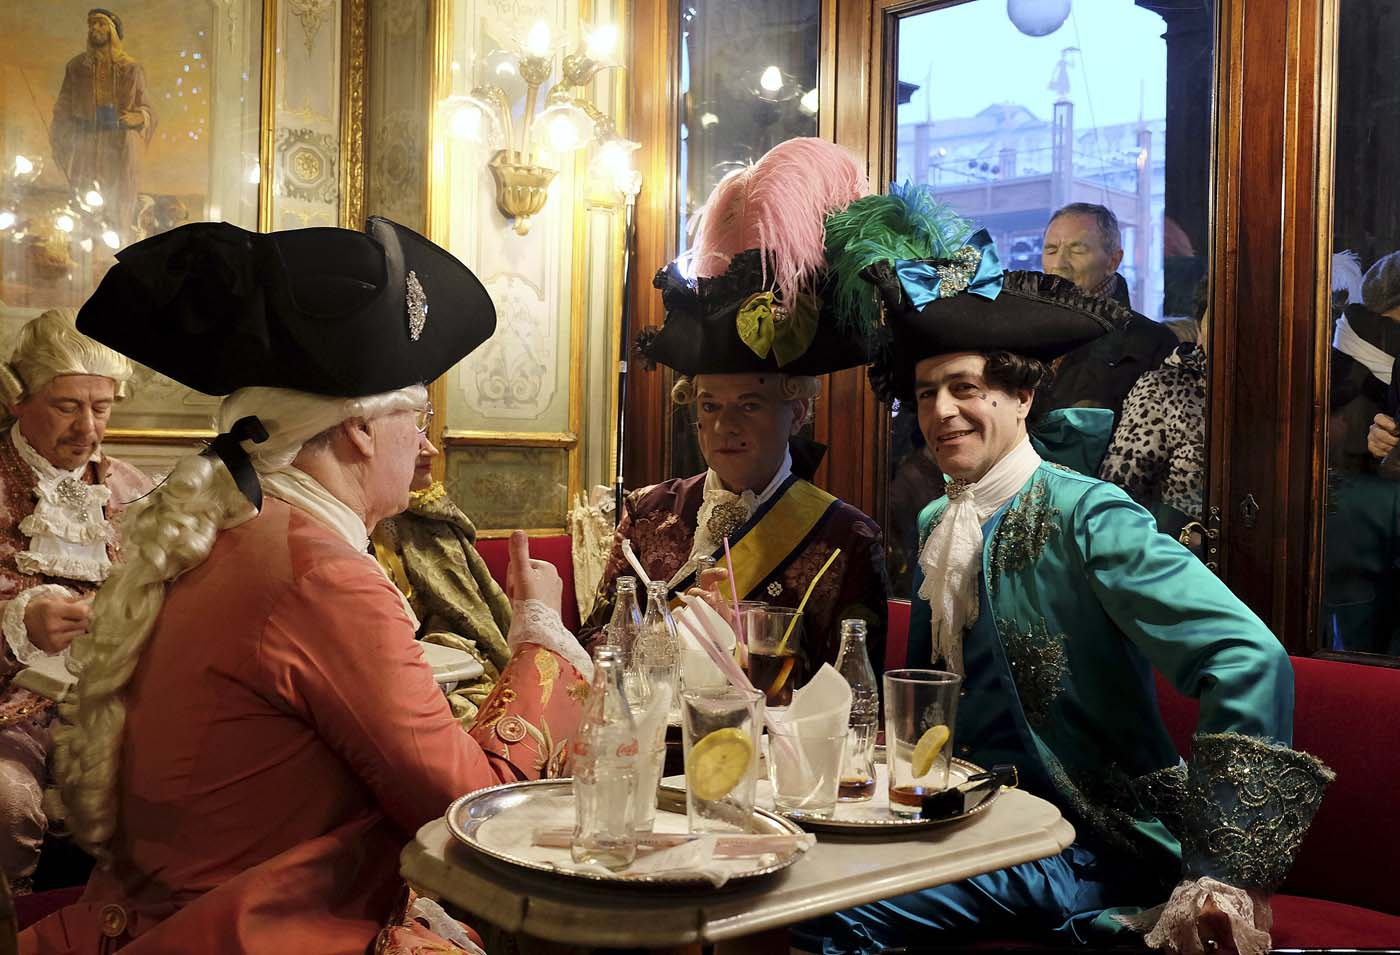 Revellers sit at the Caffe Florian coffee shop in Saint Mark's Square during the Venice Carnival, Italy January 31, 2016. REUTERS/Manuel Silvestri